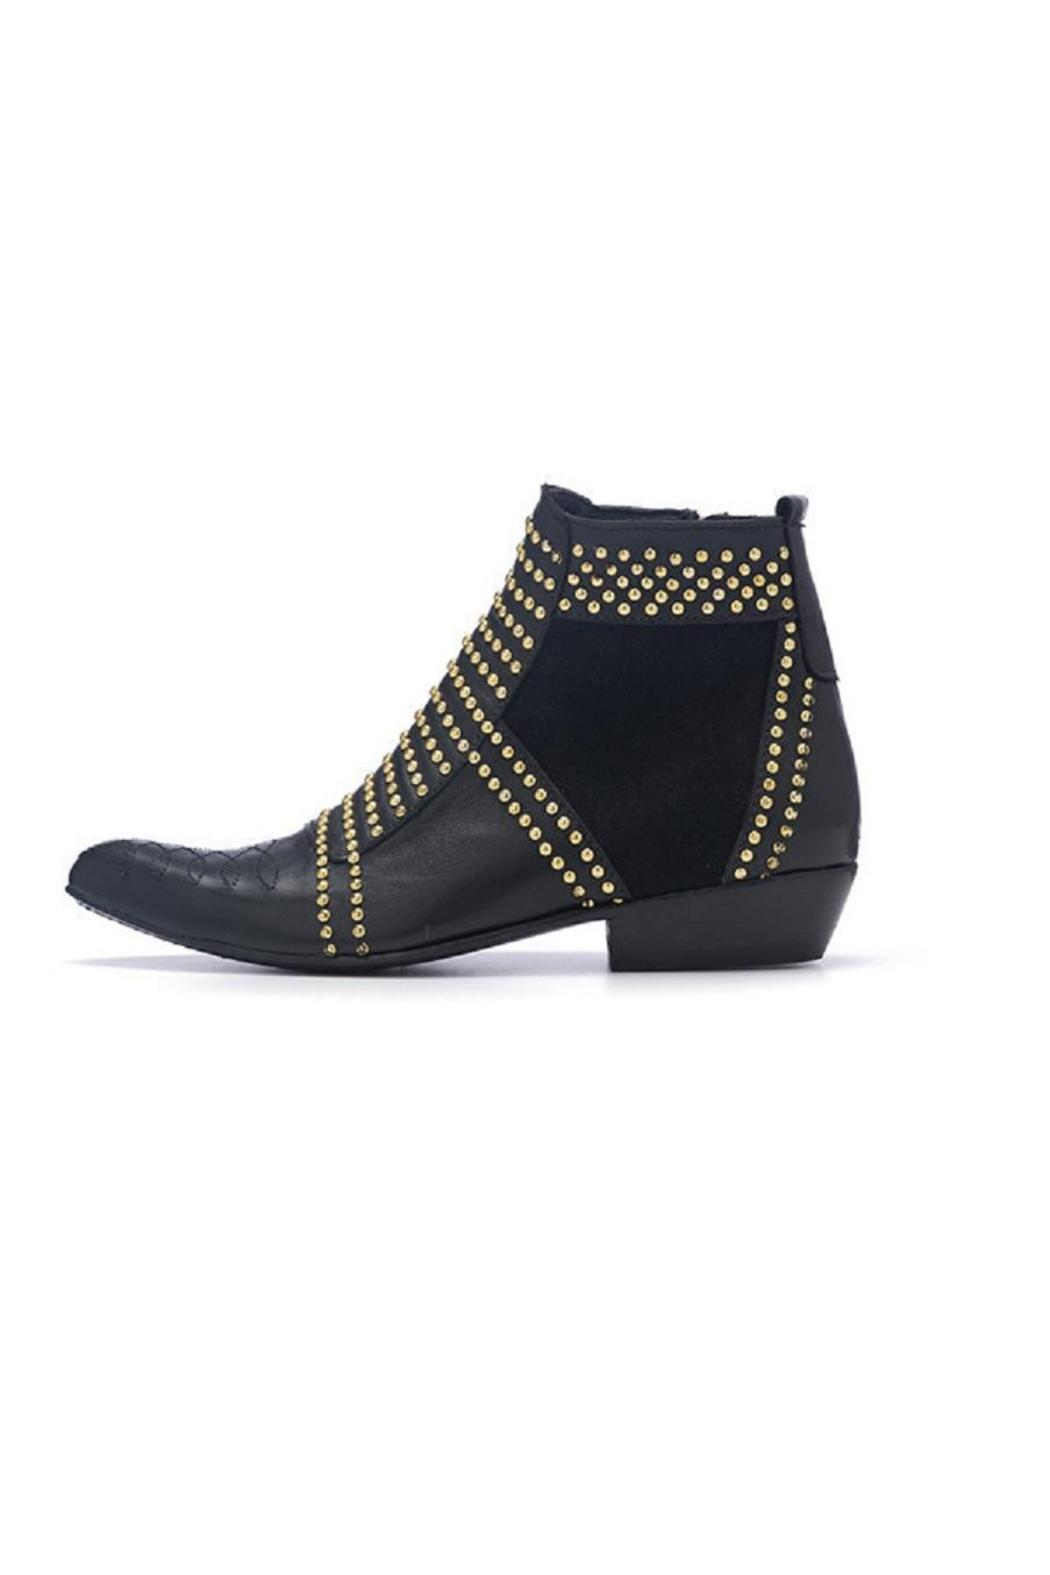 Anine Bing Black-Studded Ankle Boot - Main Image